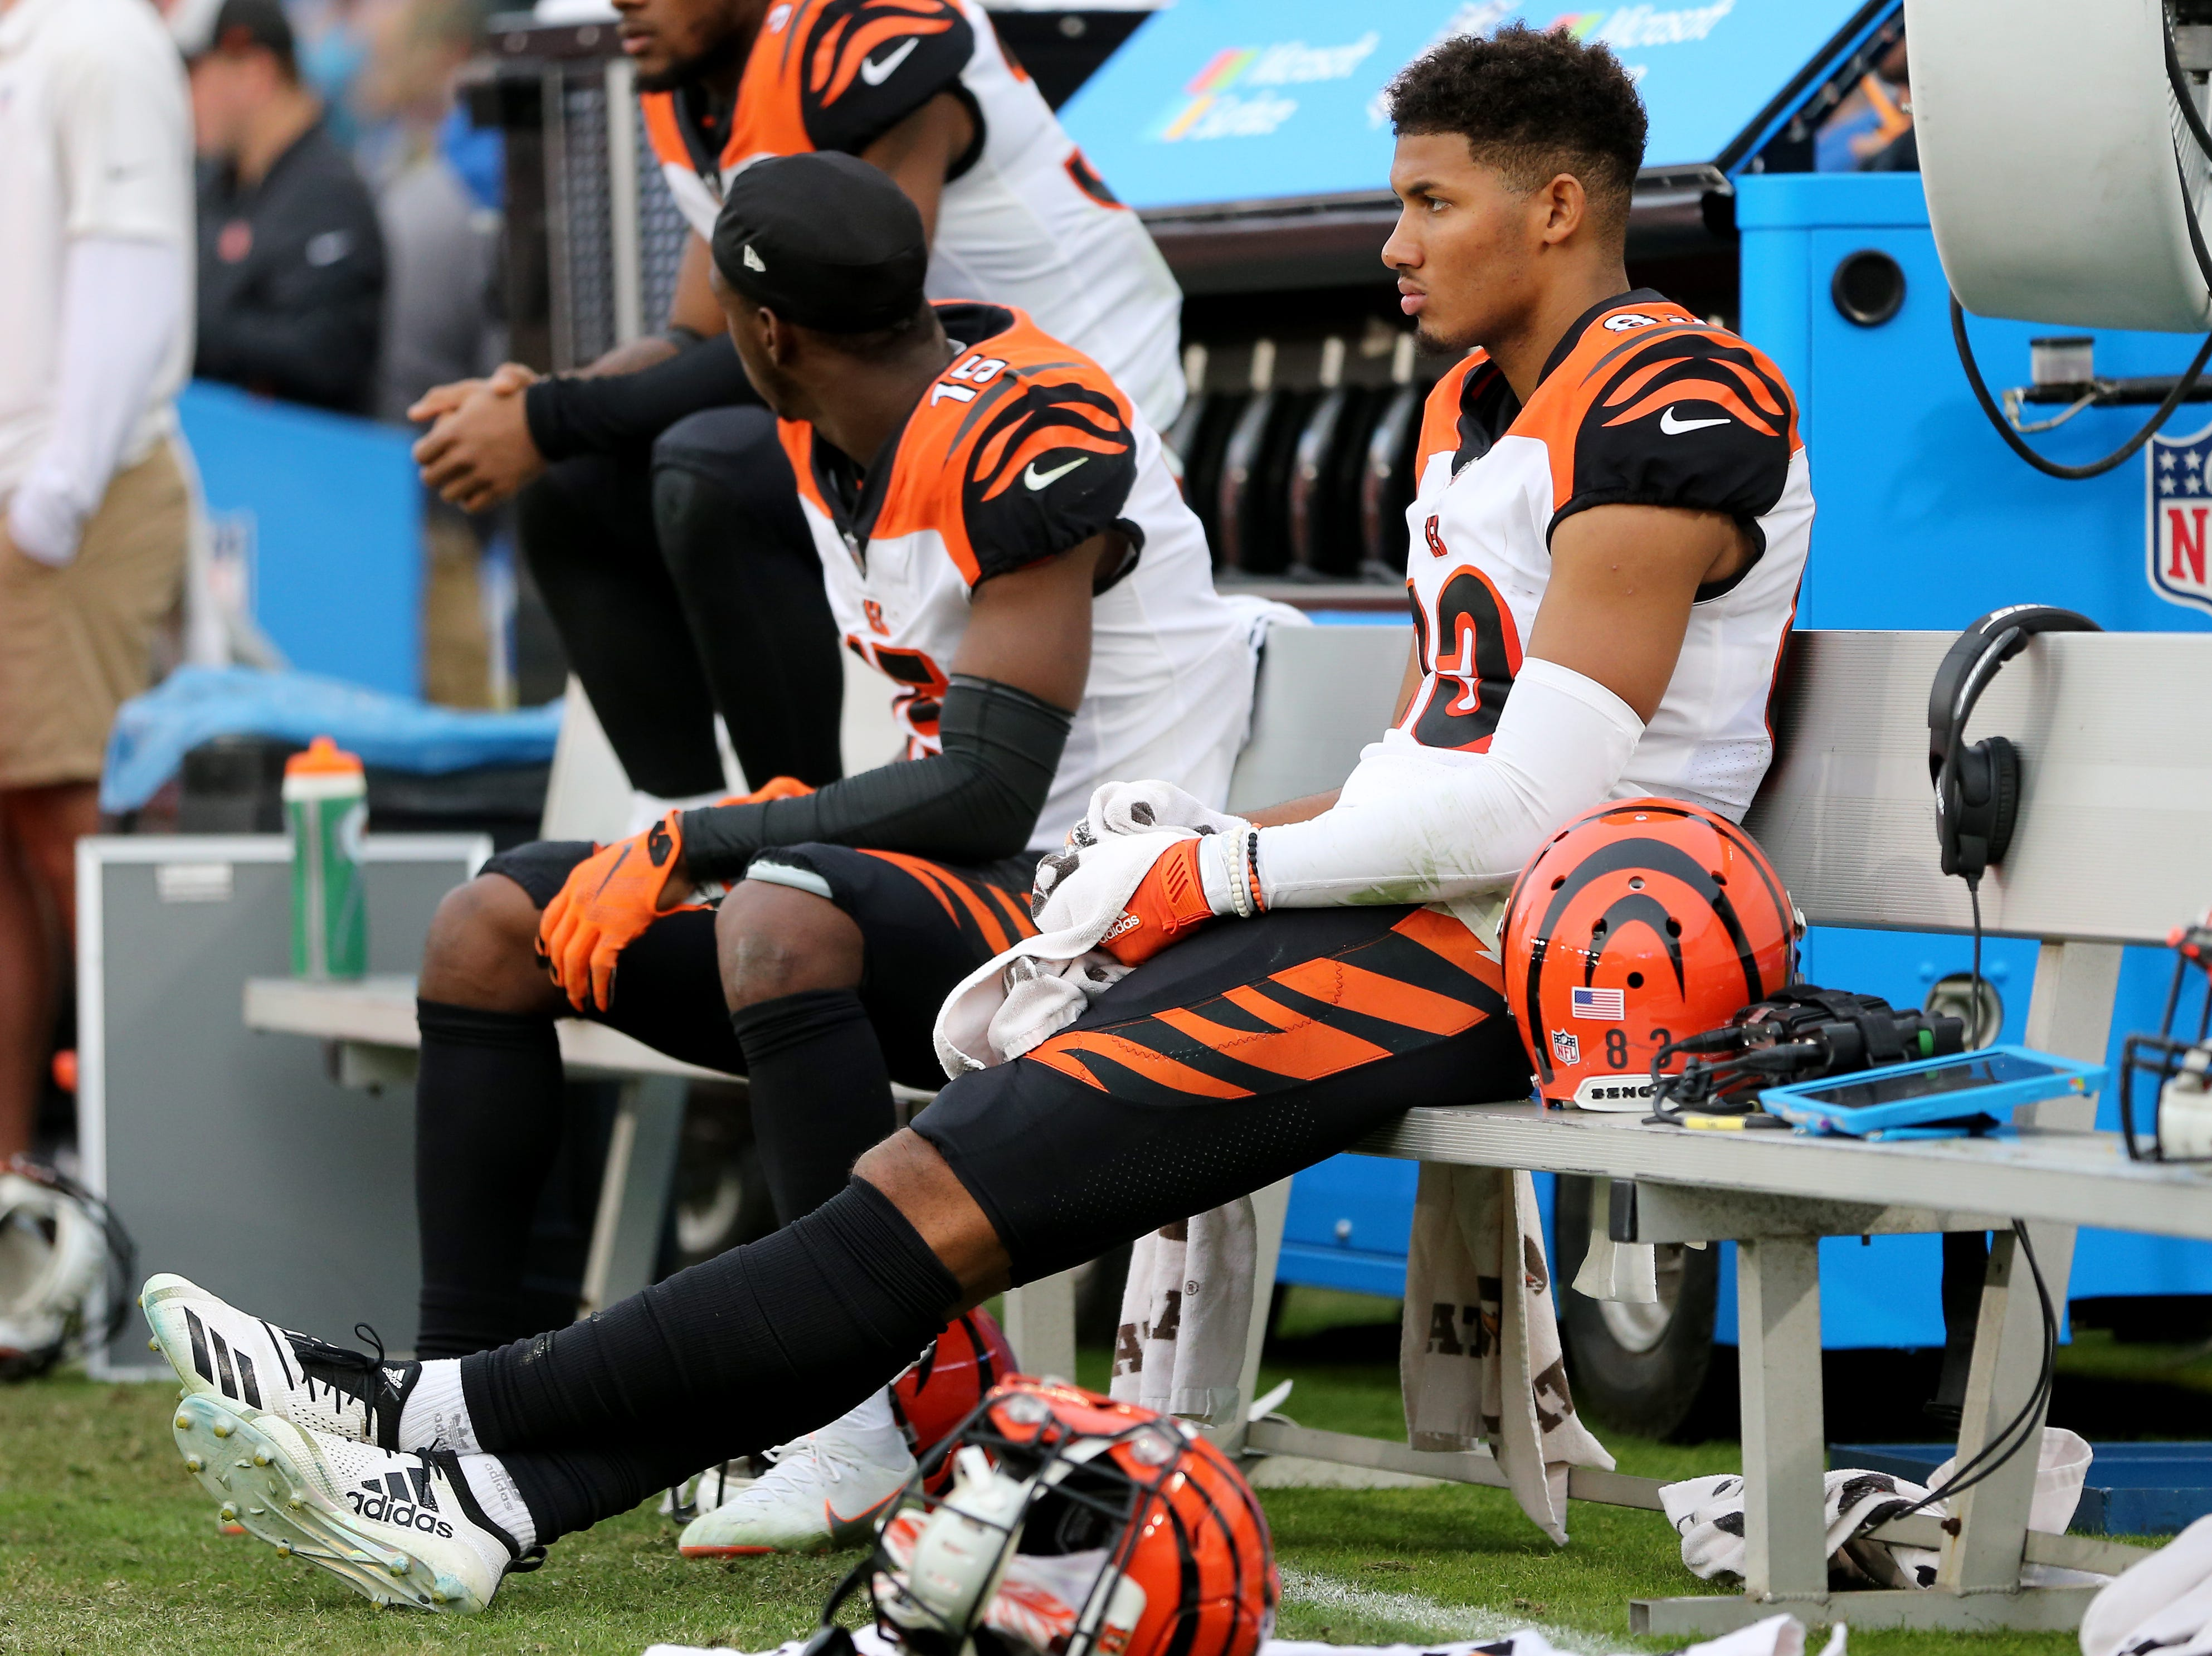 Cincinnati Bengals wide receiver Tyler Boyd (83) sits on the bench in the final moment of the fourth quarter of a Week 14 NFL football game against the Los Angeles Chargers, Sunday, Dec. 9, 2018, at StubHub Center in Carson, California. The Los Angeles Chargers won 26.21.